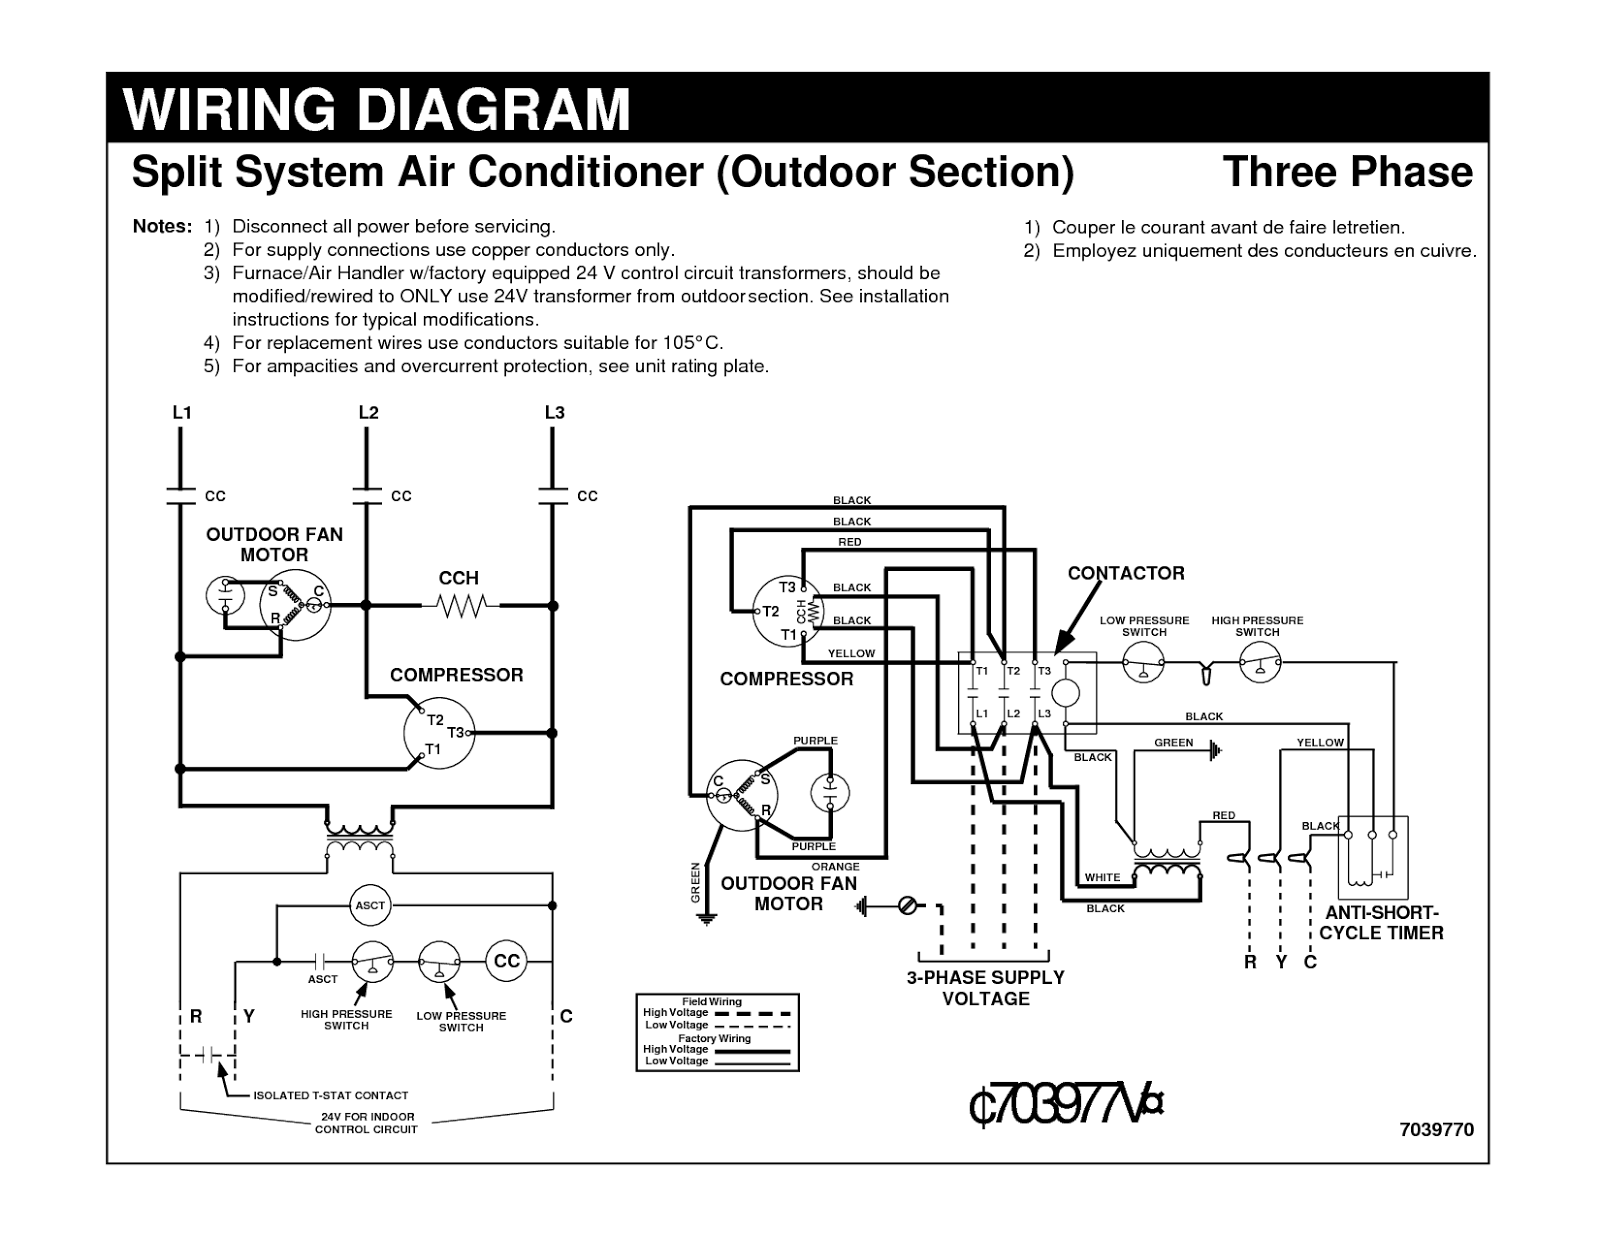 electrical wiring diagrams for air conditioning systems part one rh electrical knowhow com Home AC Wiring Diagram Thermostat Wiring Diagram